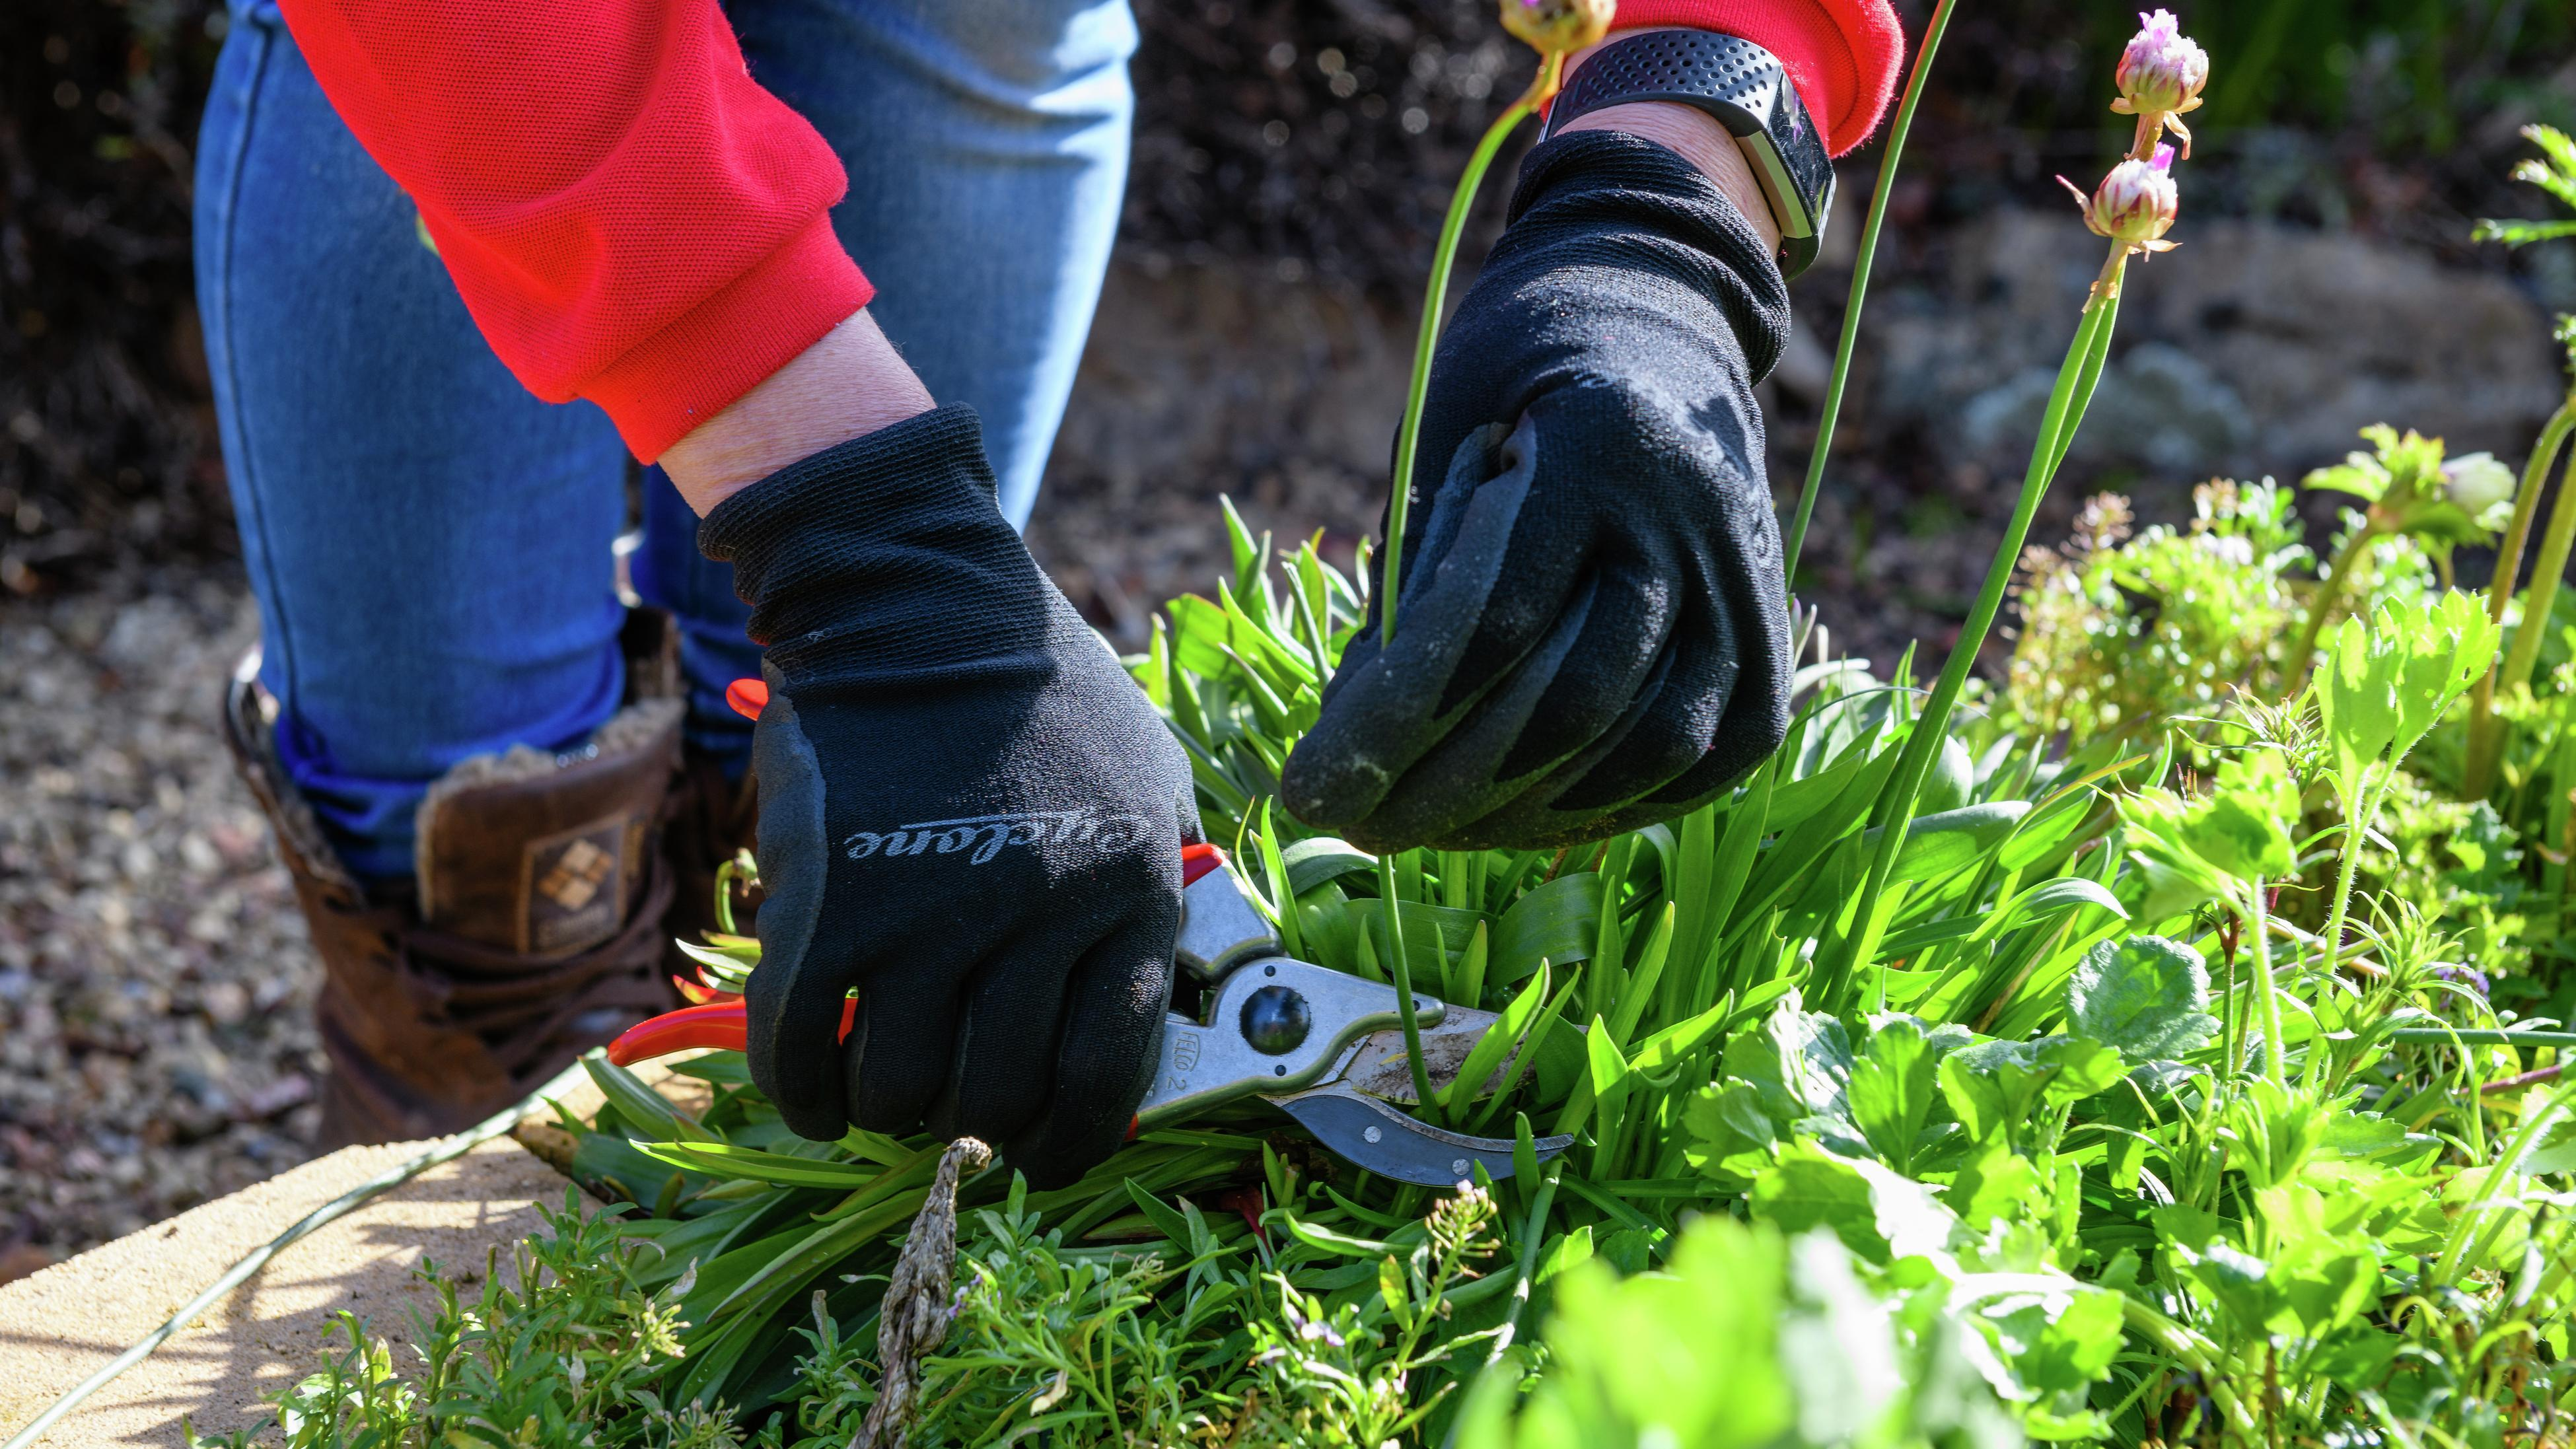 Gloved person using a pruning tool to remove dead flowers